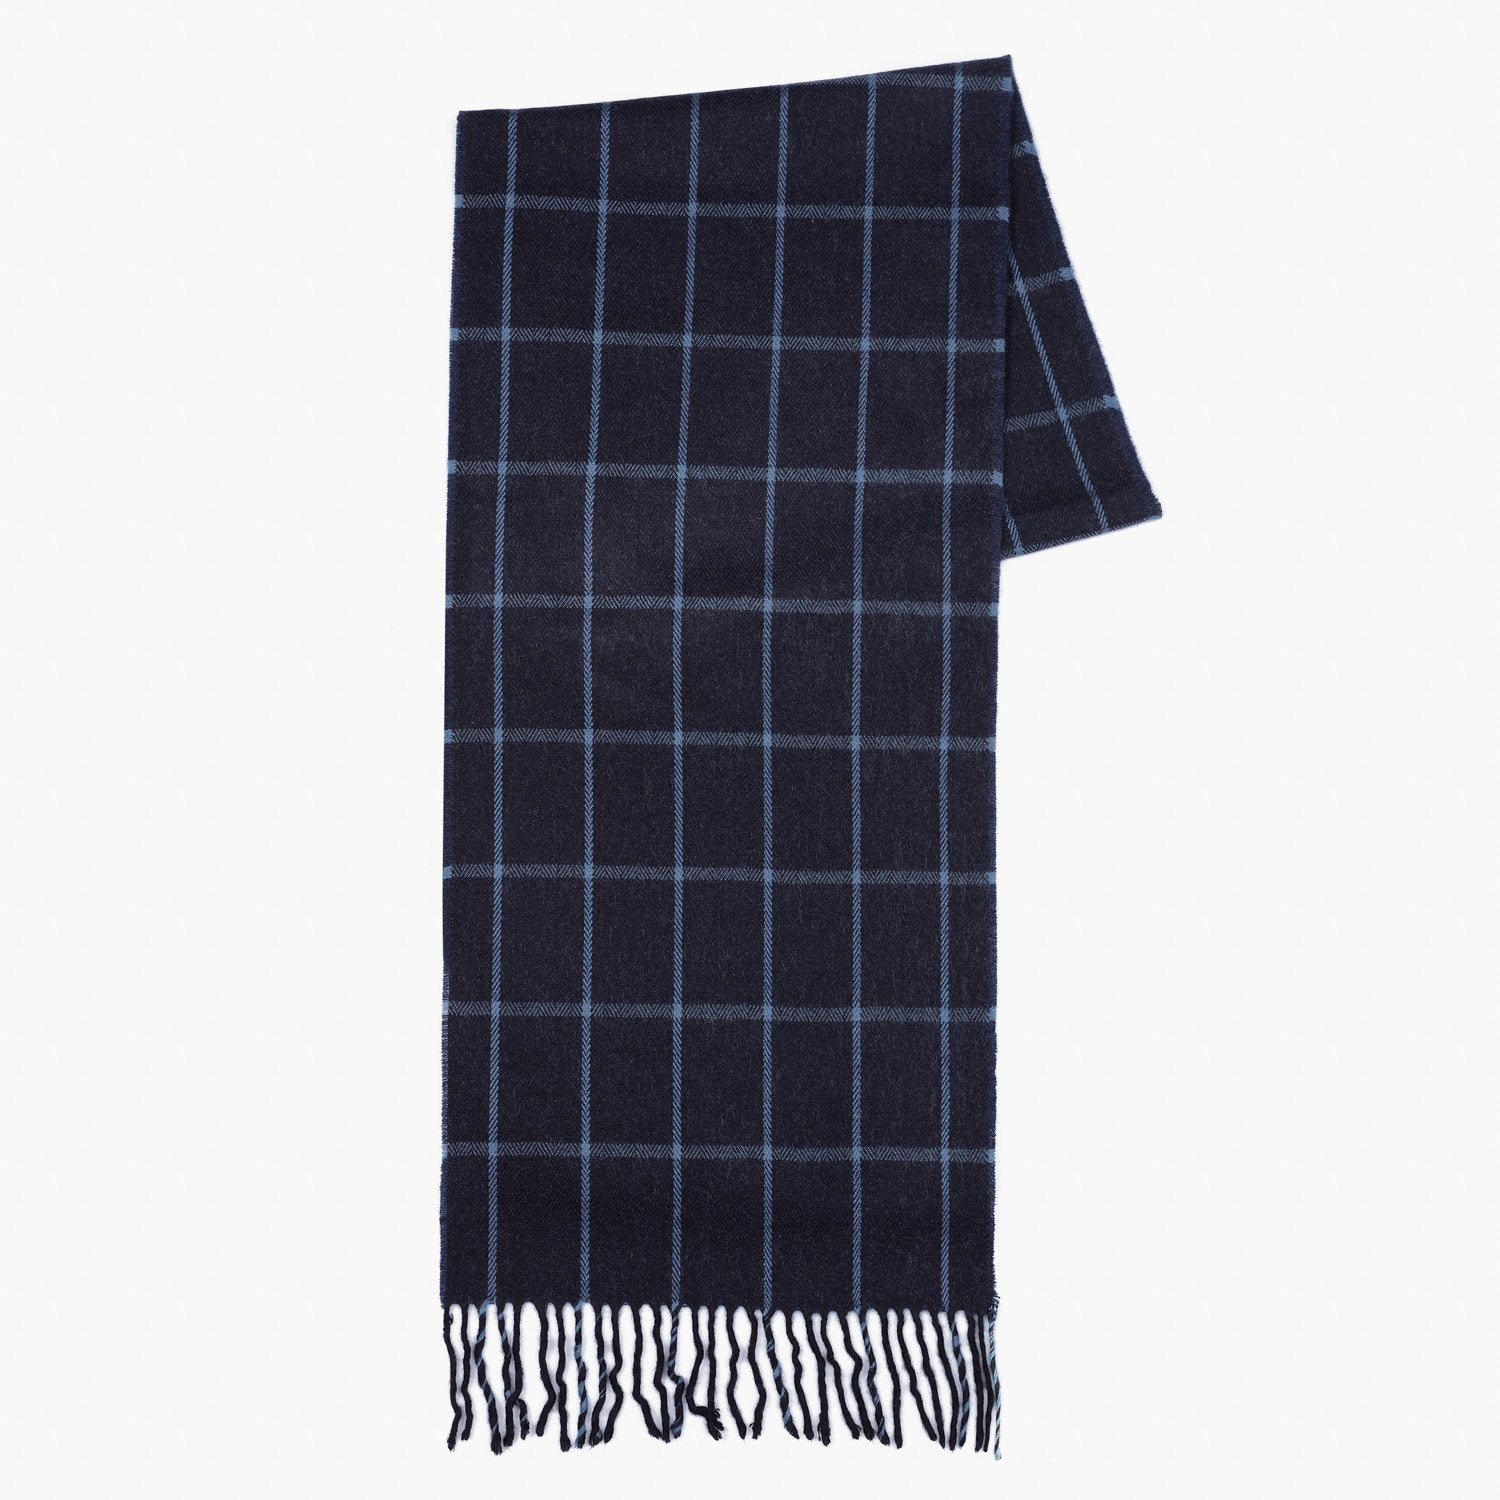 Checked Herringbone Textured Navy Scarf